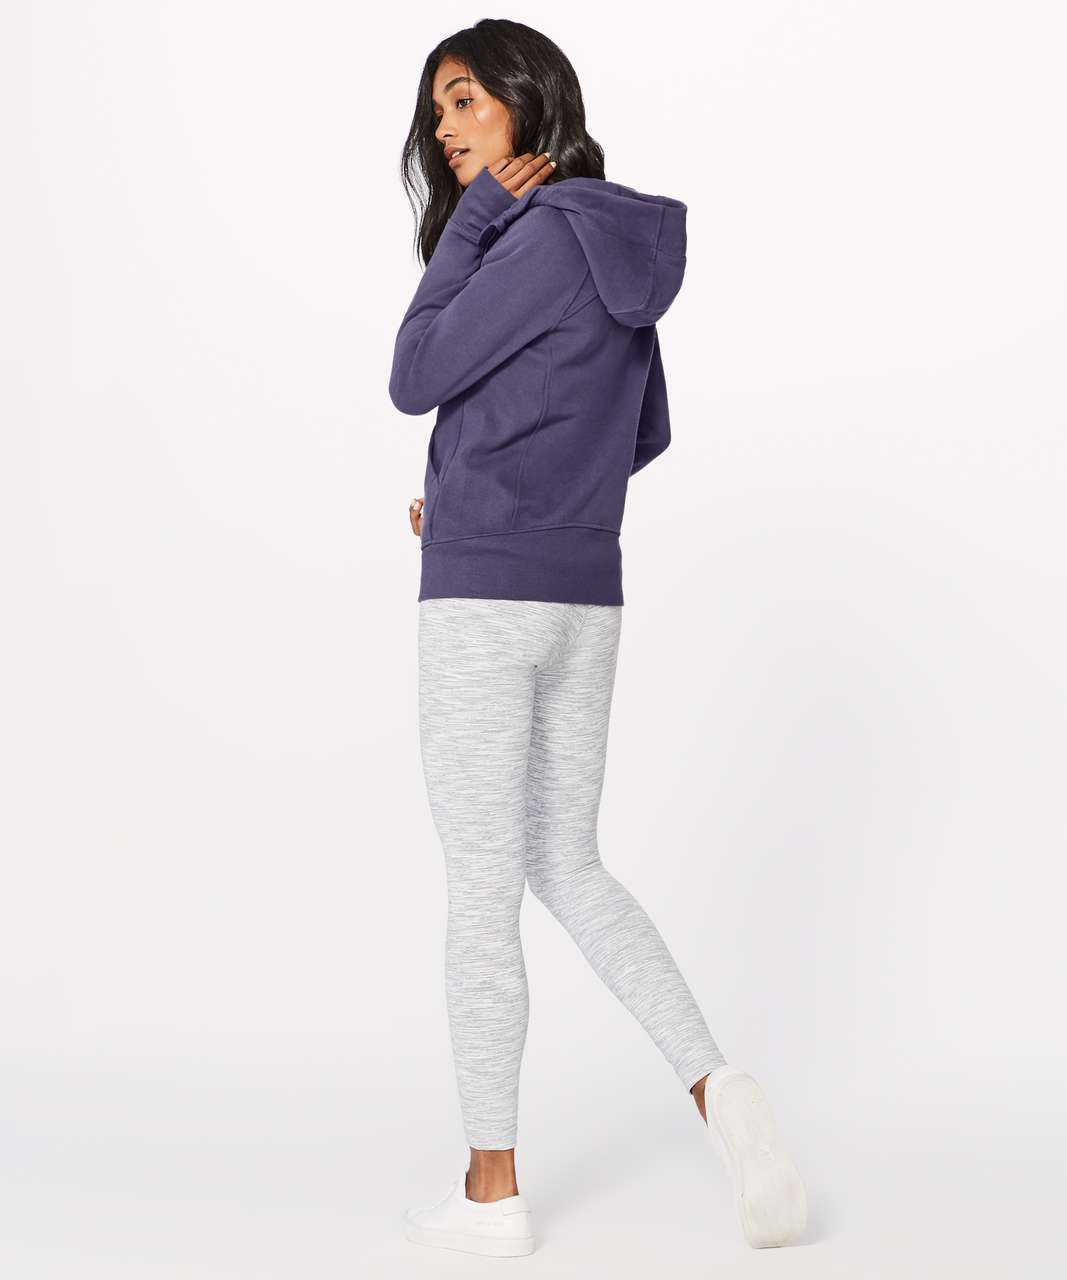 Lululemon Scuba Hoodie *Light Cotton Fleece - Viola